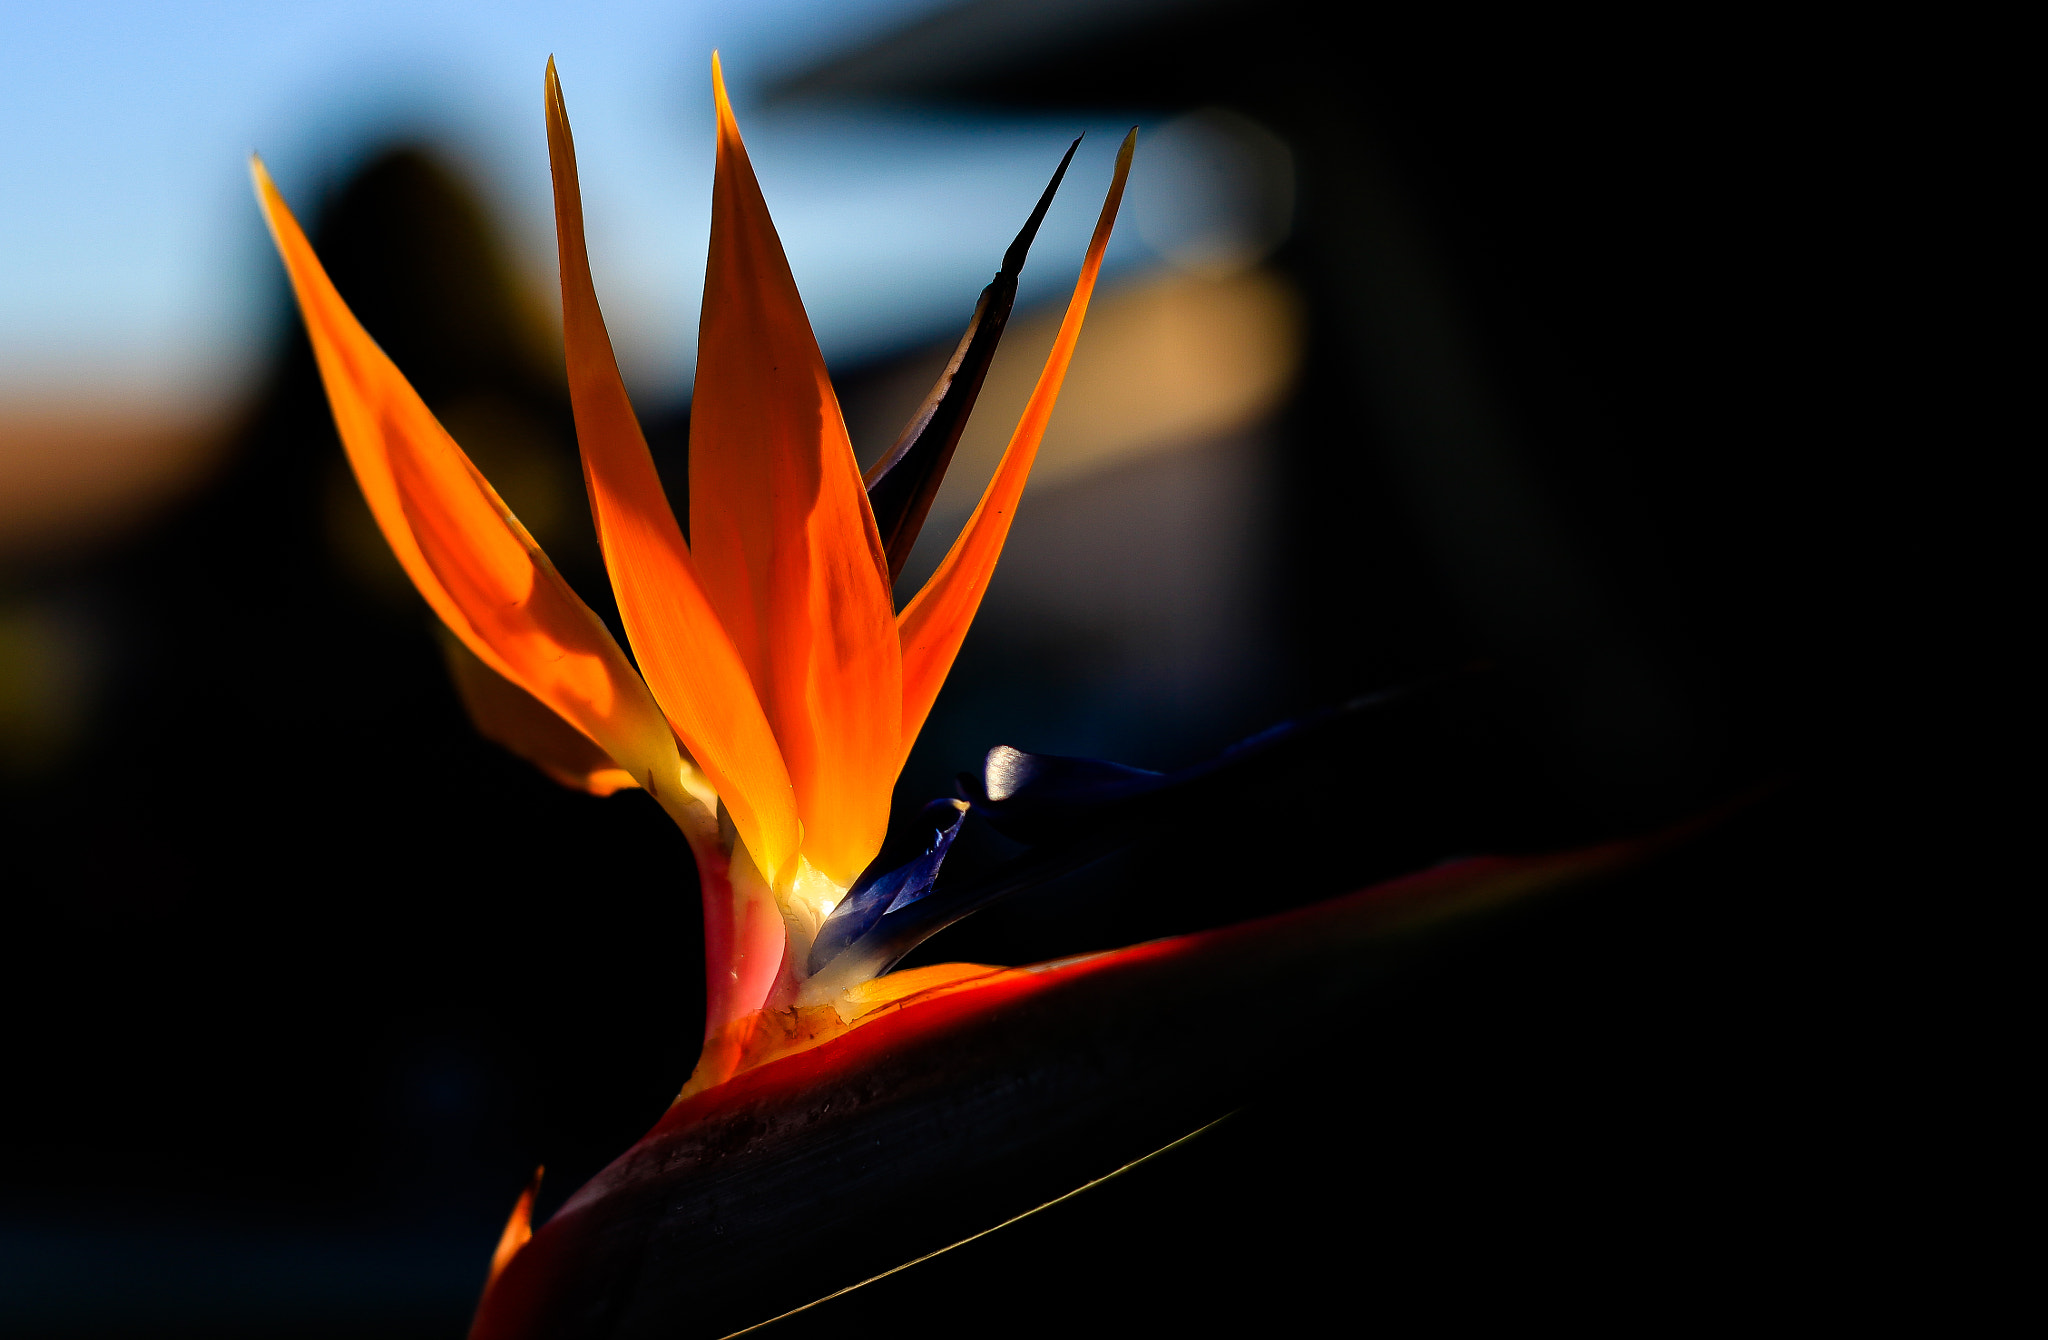 Photograph Orange by minh pham on 500px